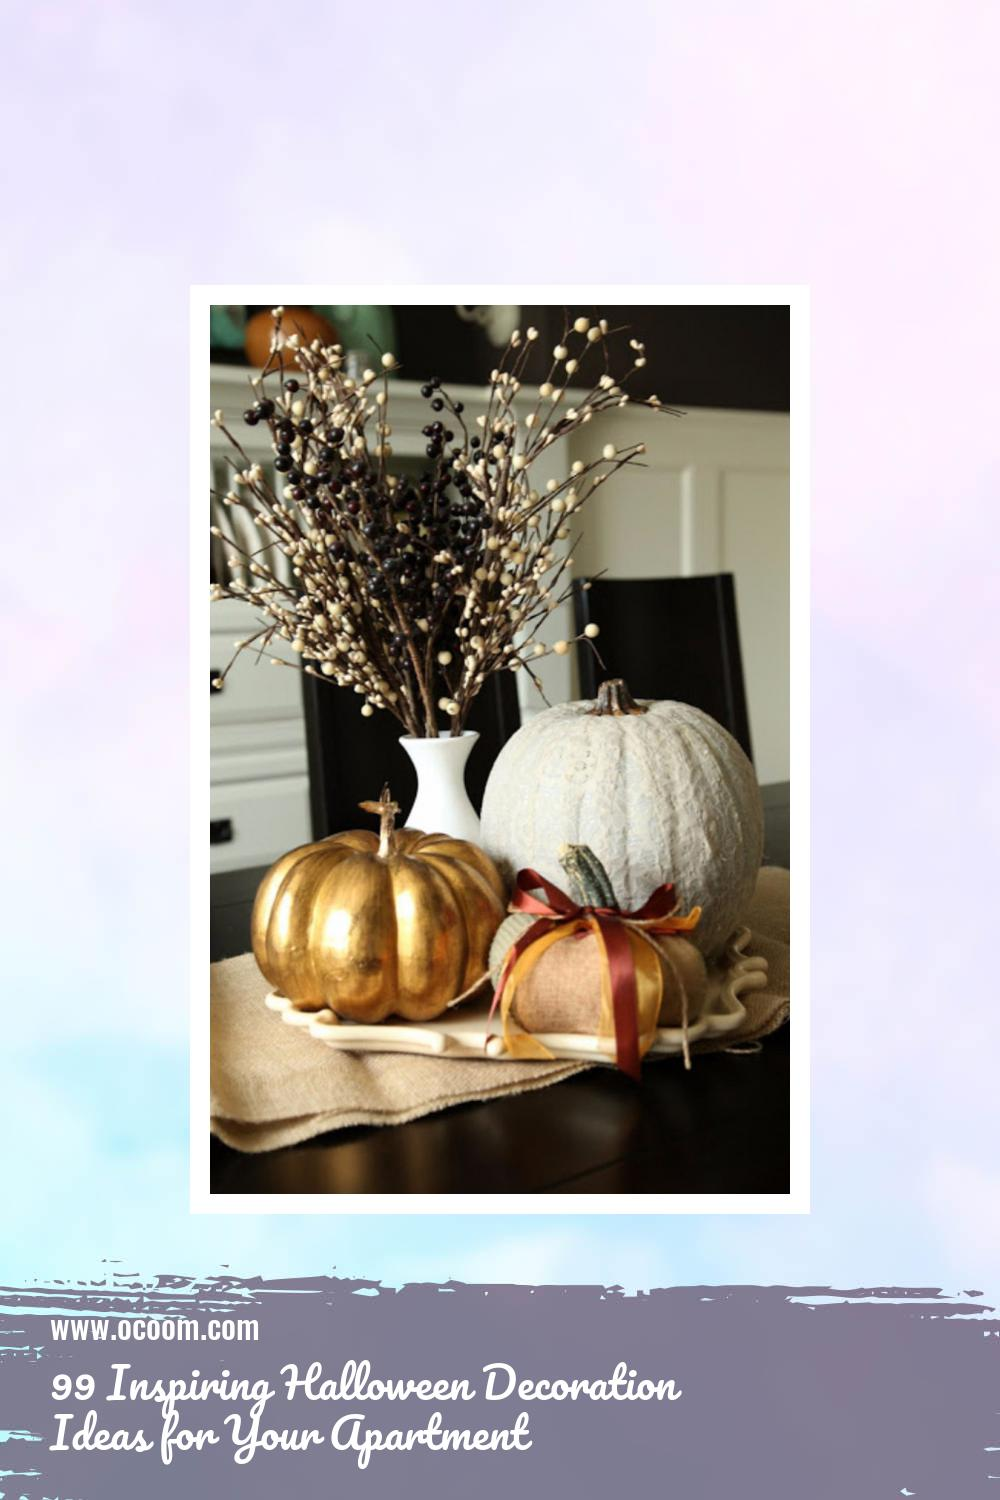 99 Inspiring Halloween Decoration Ideas for Your Apartment 42